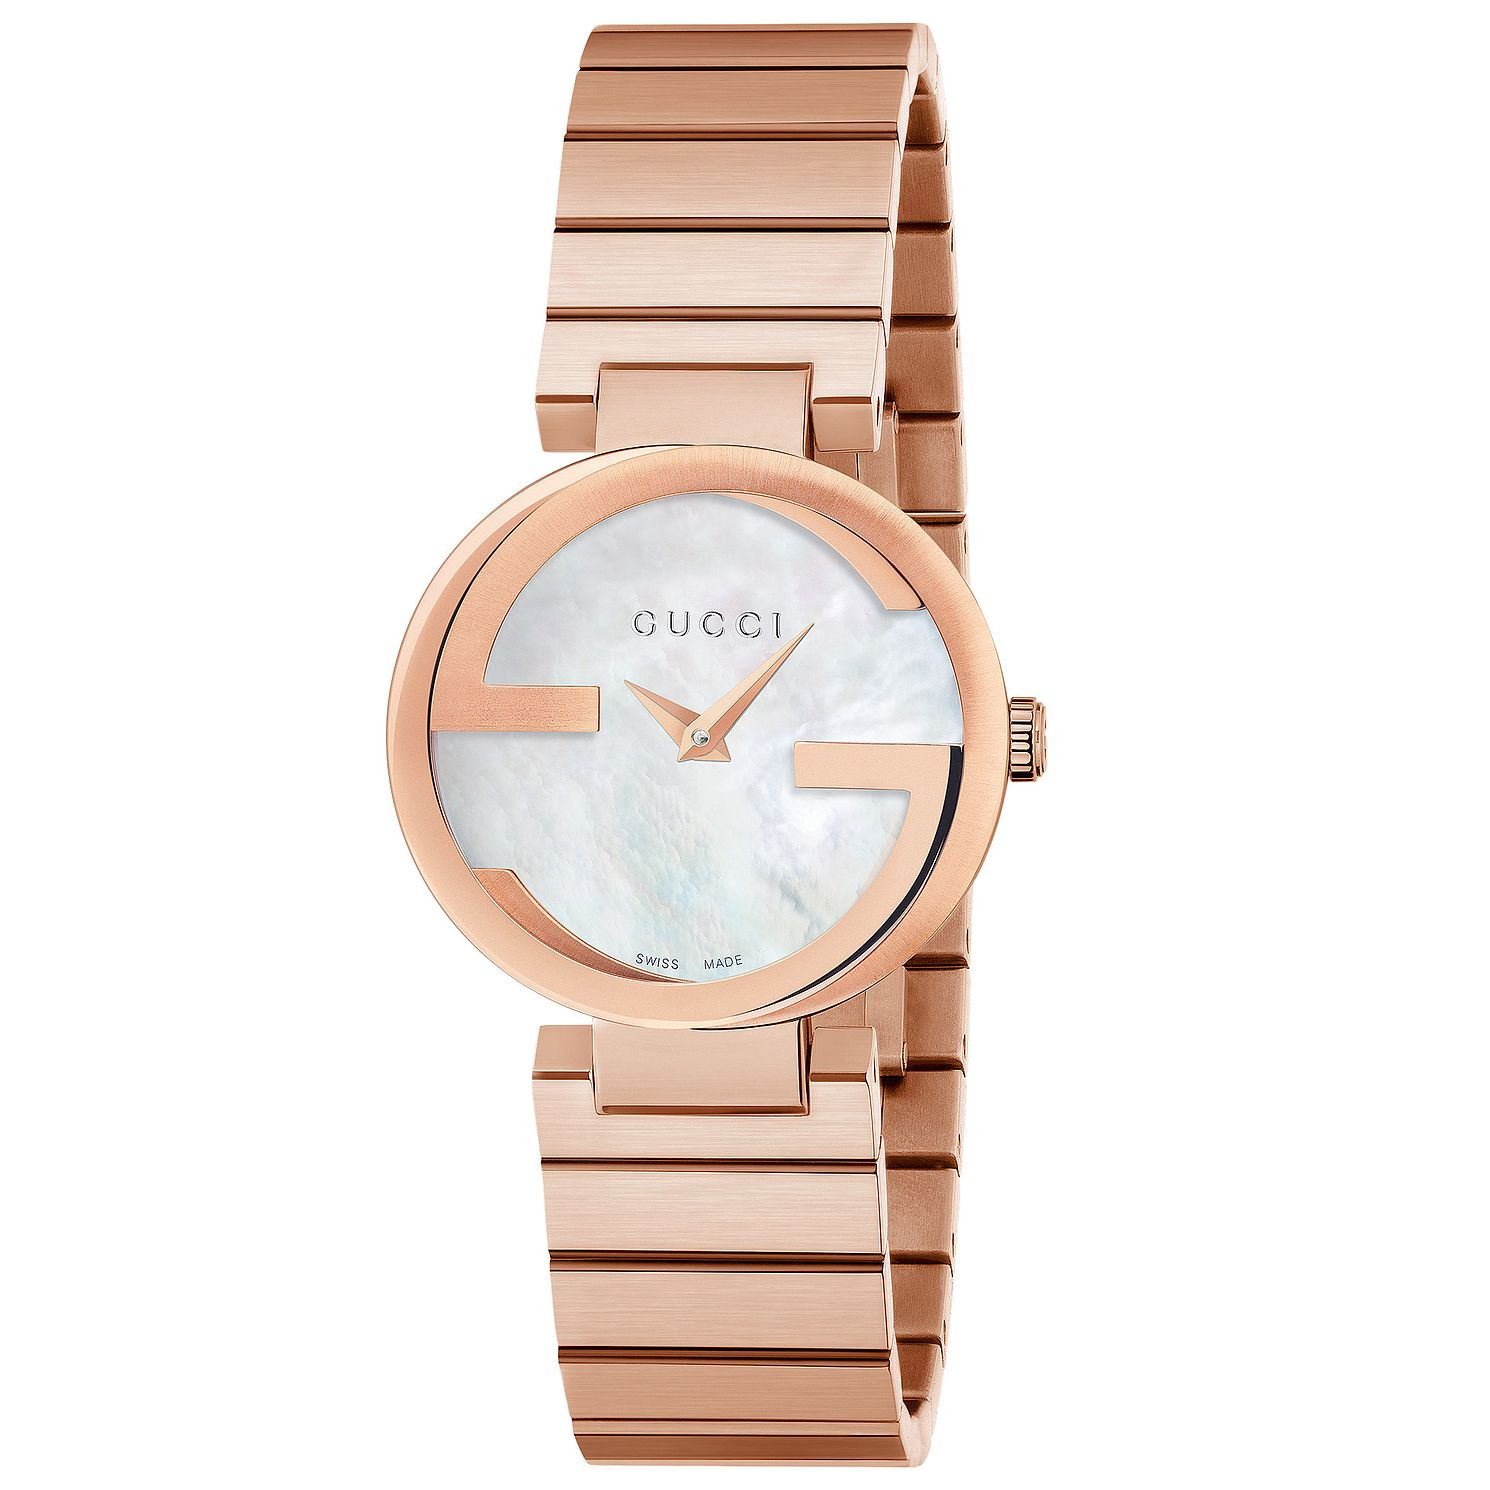 Gucci Interlocking Qxg' Rose Gold Tone Bracelet Watch - Product number 4899512